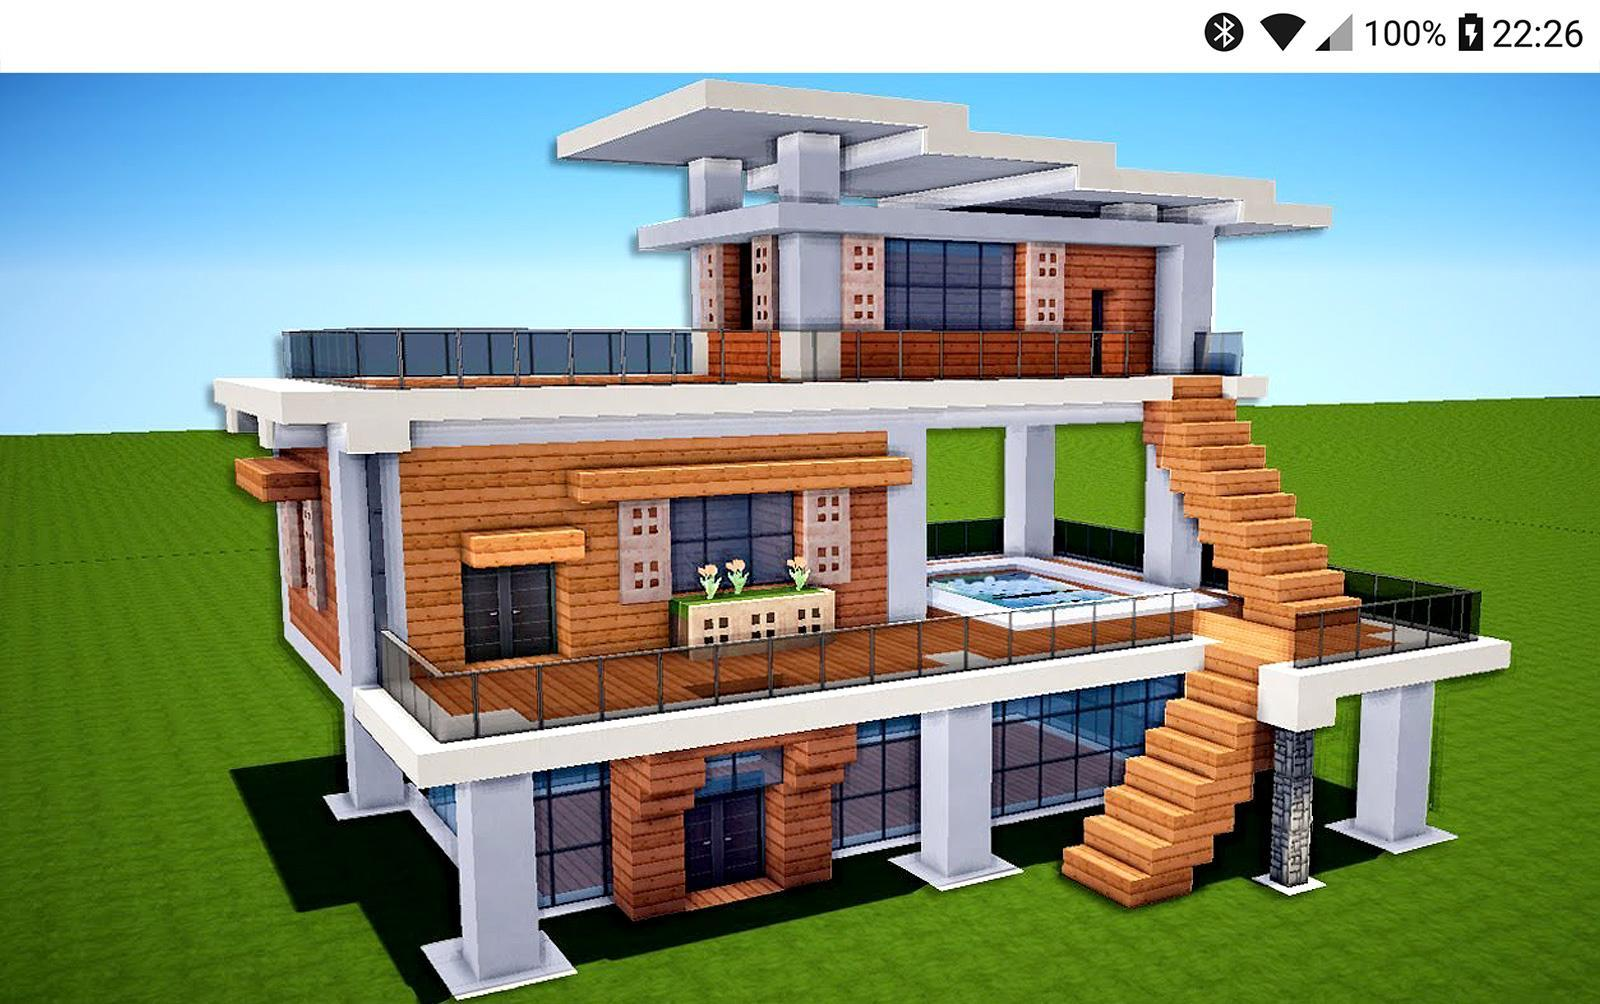 2018 Minecraft House Ideas for Building for Android - APK